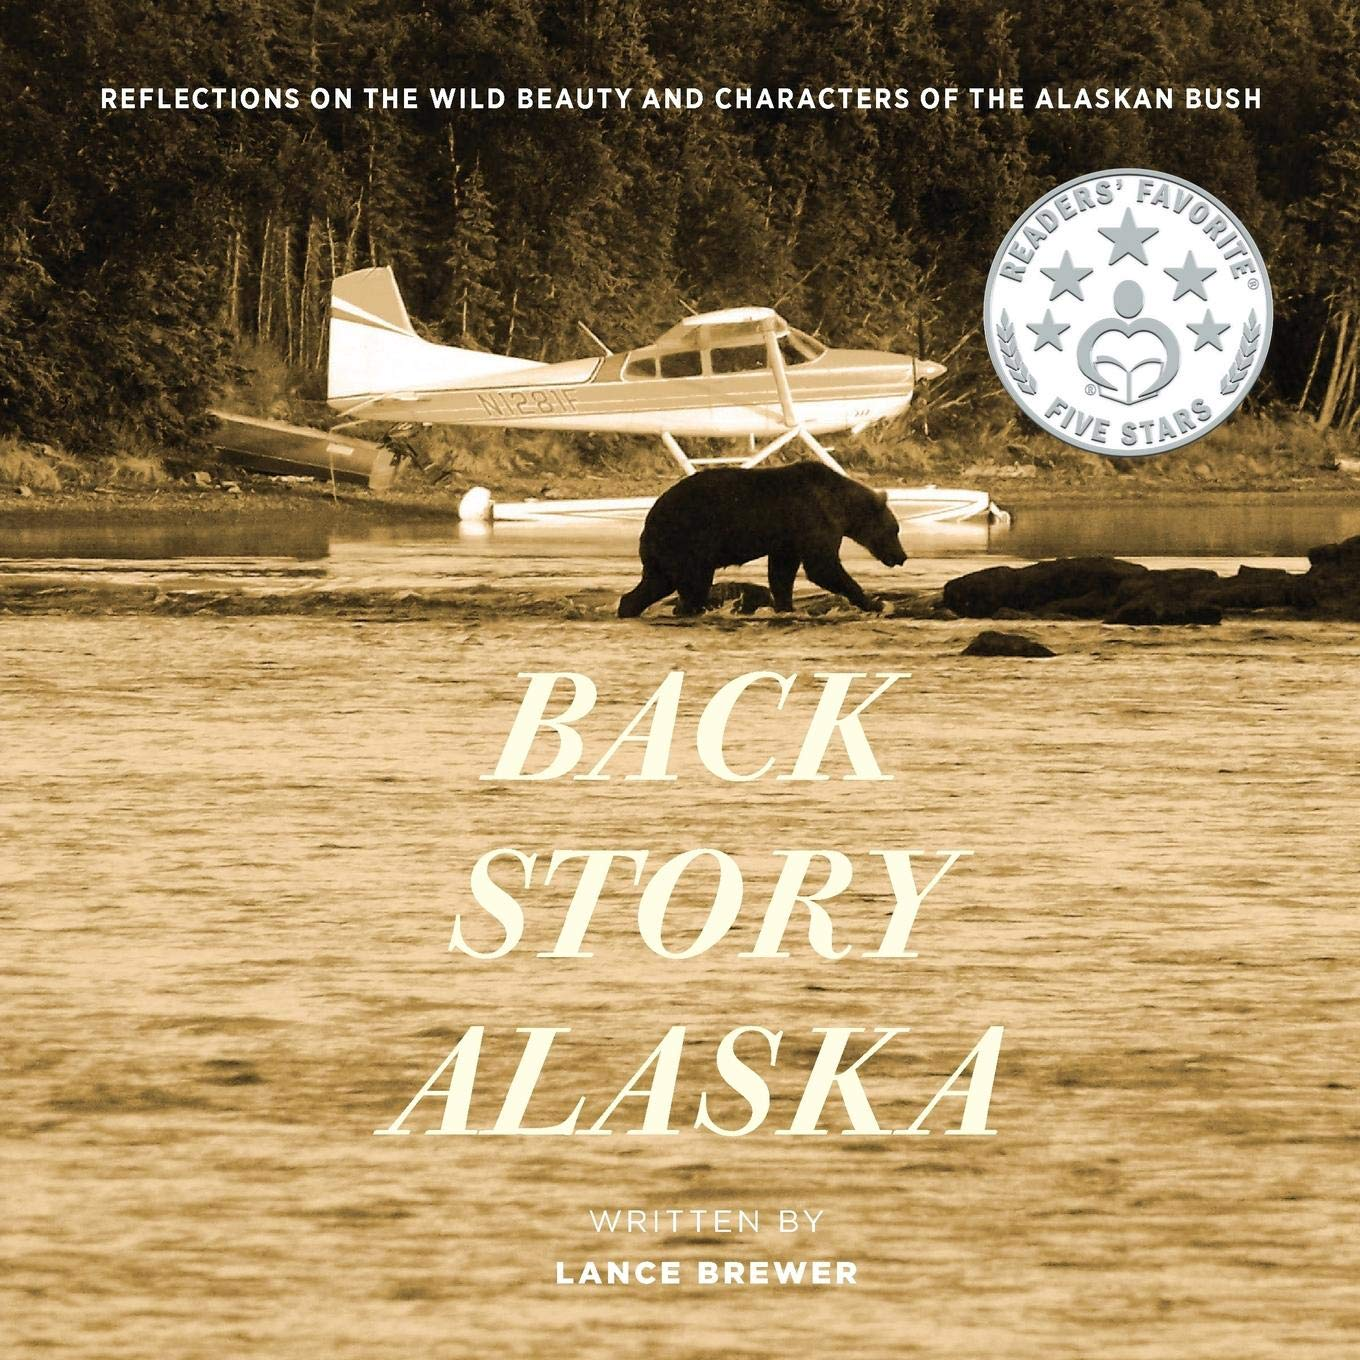 Back Story Alaska: Reflections on the Wild Beauty and Characters of the Alaskan Bush